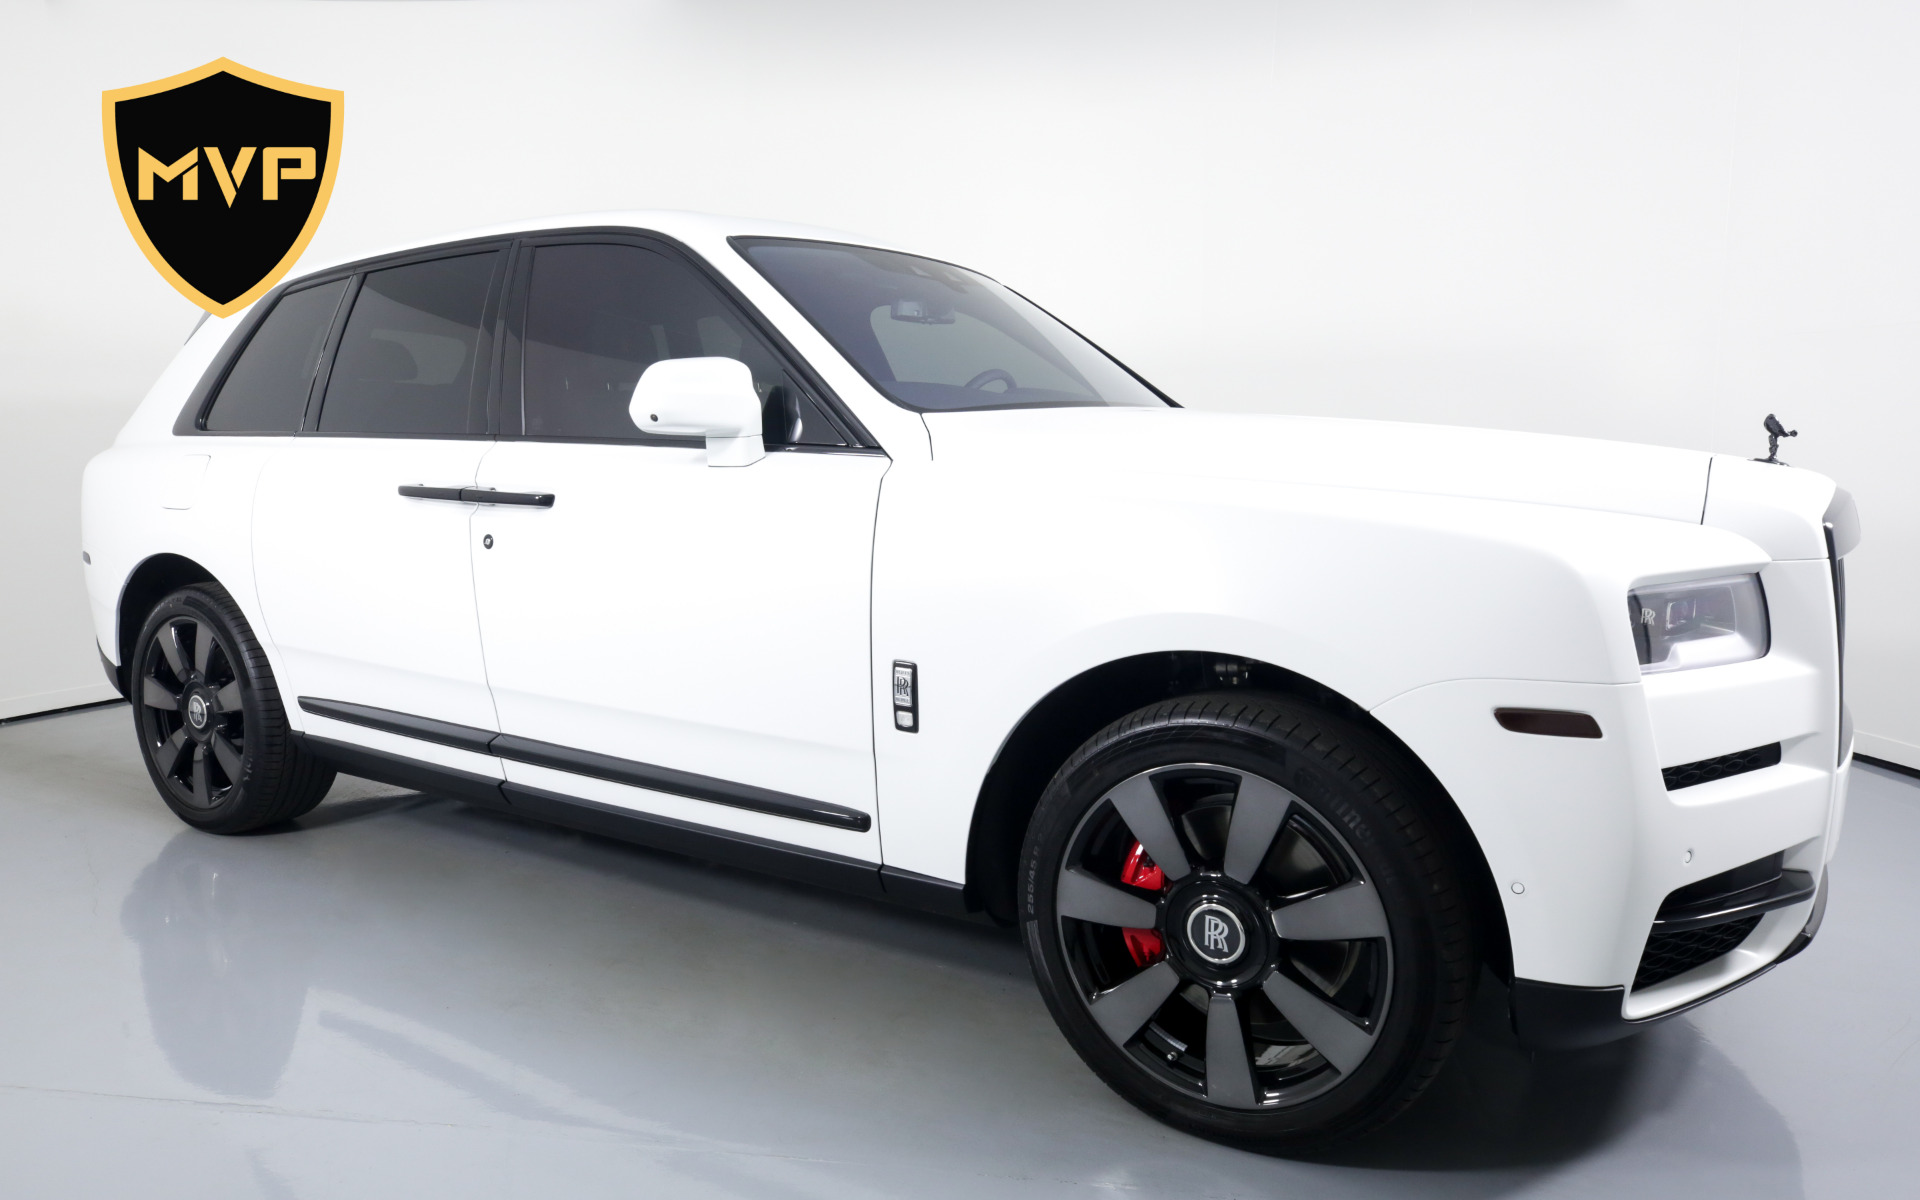 2020 ROLLS ROYCE CULLINAN for sale $1,900 at MVP Charlotte in Charlotte NC 28207 1